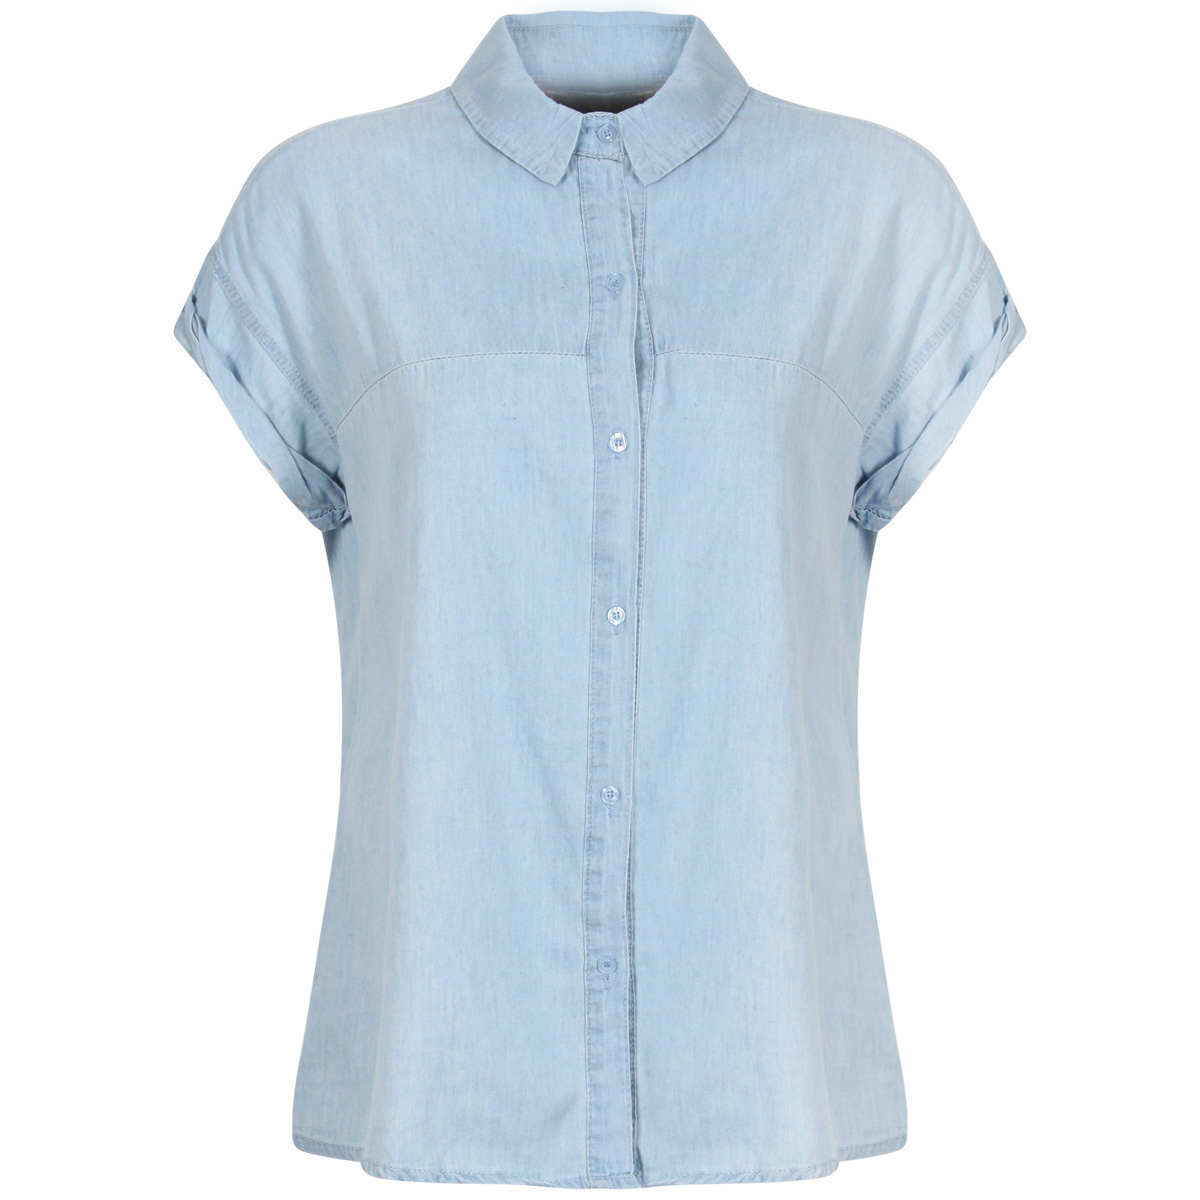 Similiar Best Women's Cotton Button Up Shirt Keywords